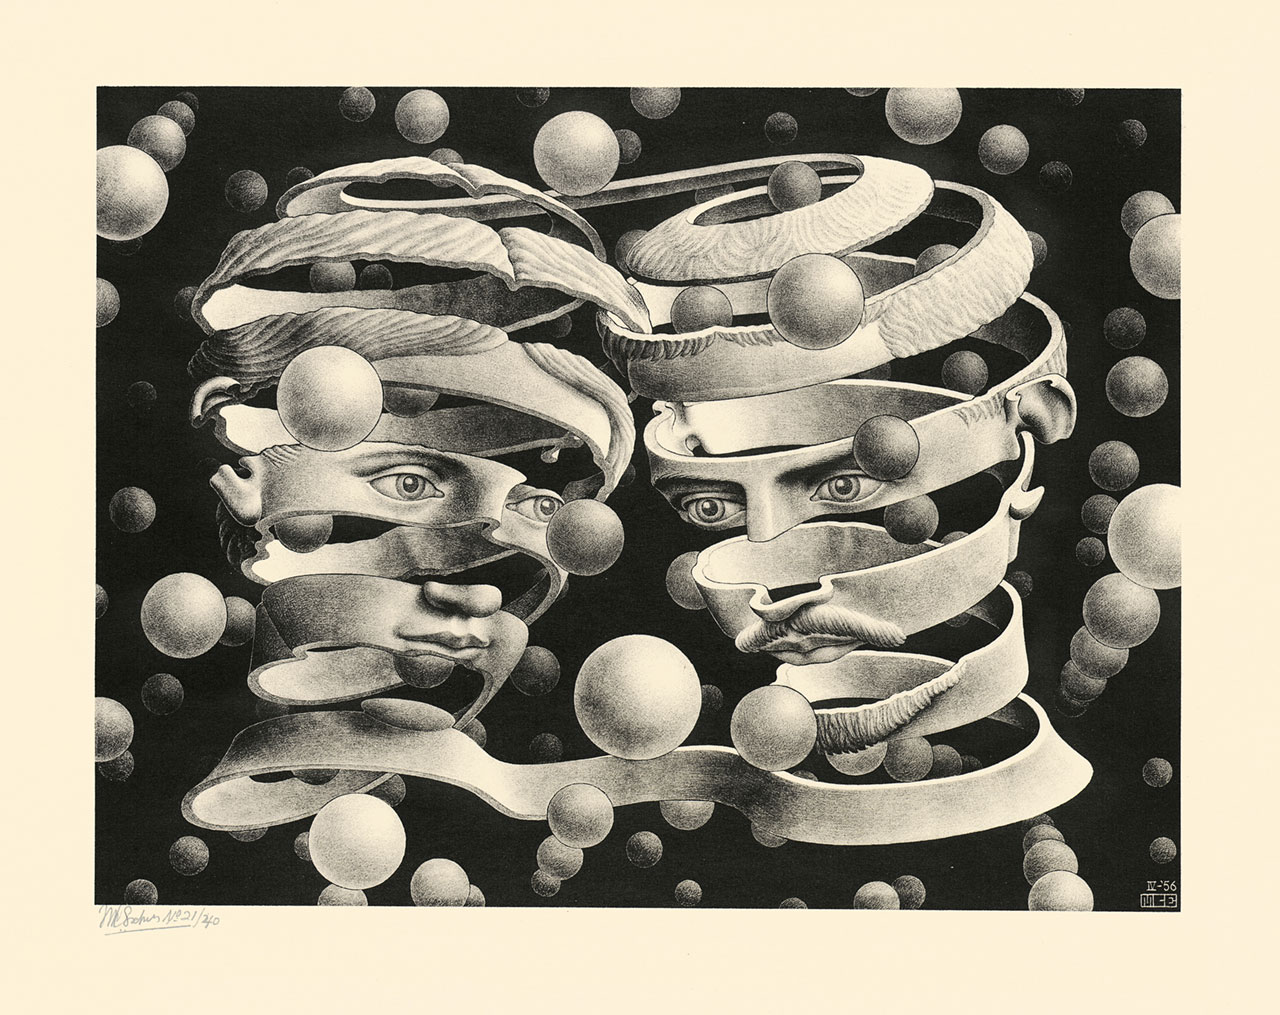 M. C. Escher, Bond of union, April 1956, lithograph. Escher Collection, Gemeentemuseum Den Haag, The Hague, the Netherlands © The M. C. Escher Company, the Netherlands. All rights reserved.